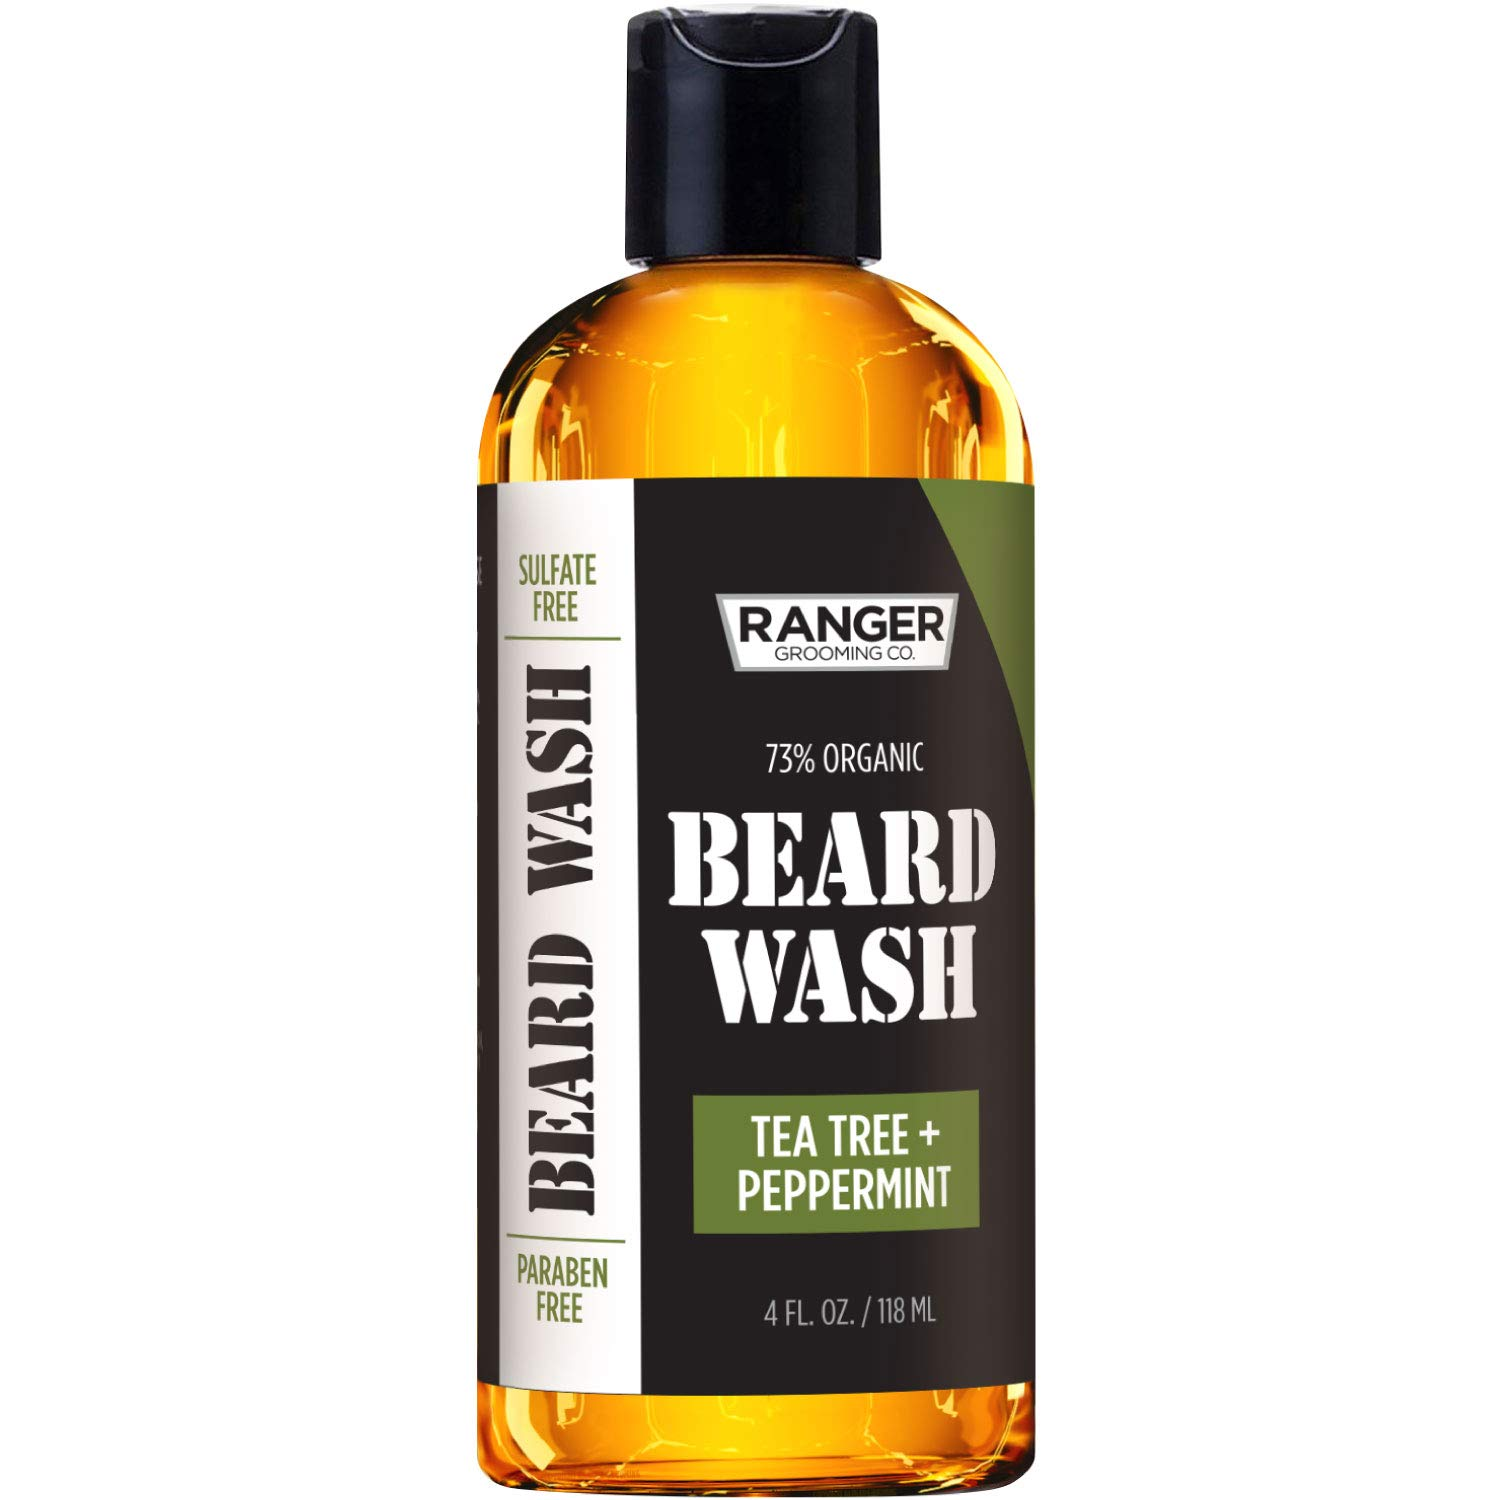 Beard Wash Shampoo by Ranger Grooming Co by Leven Rose, Natural Beard Cleanser & Conditioner for Men, Tea Tree & Peppermint Scented for Growth & Thickening, Sulfate & Paraben Free 4 oz